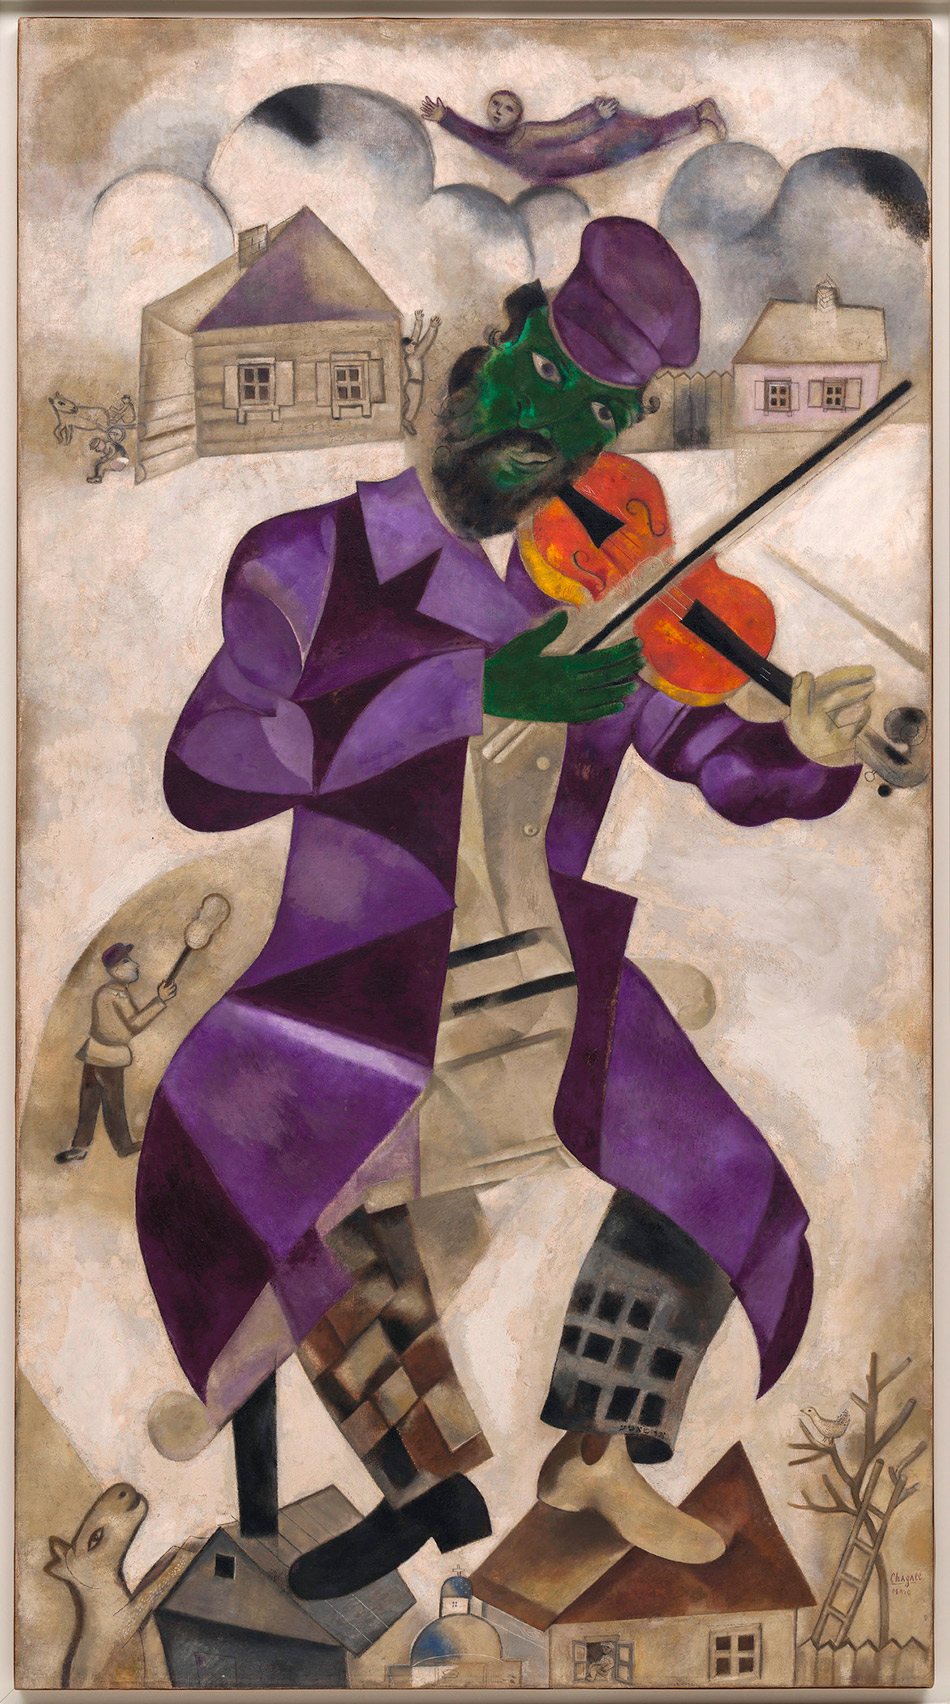 lacma_chagall-fantasies-for-the-stages_green-violinist_w